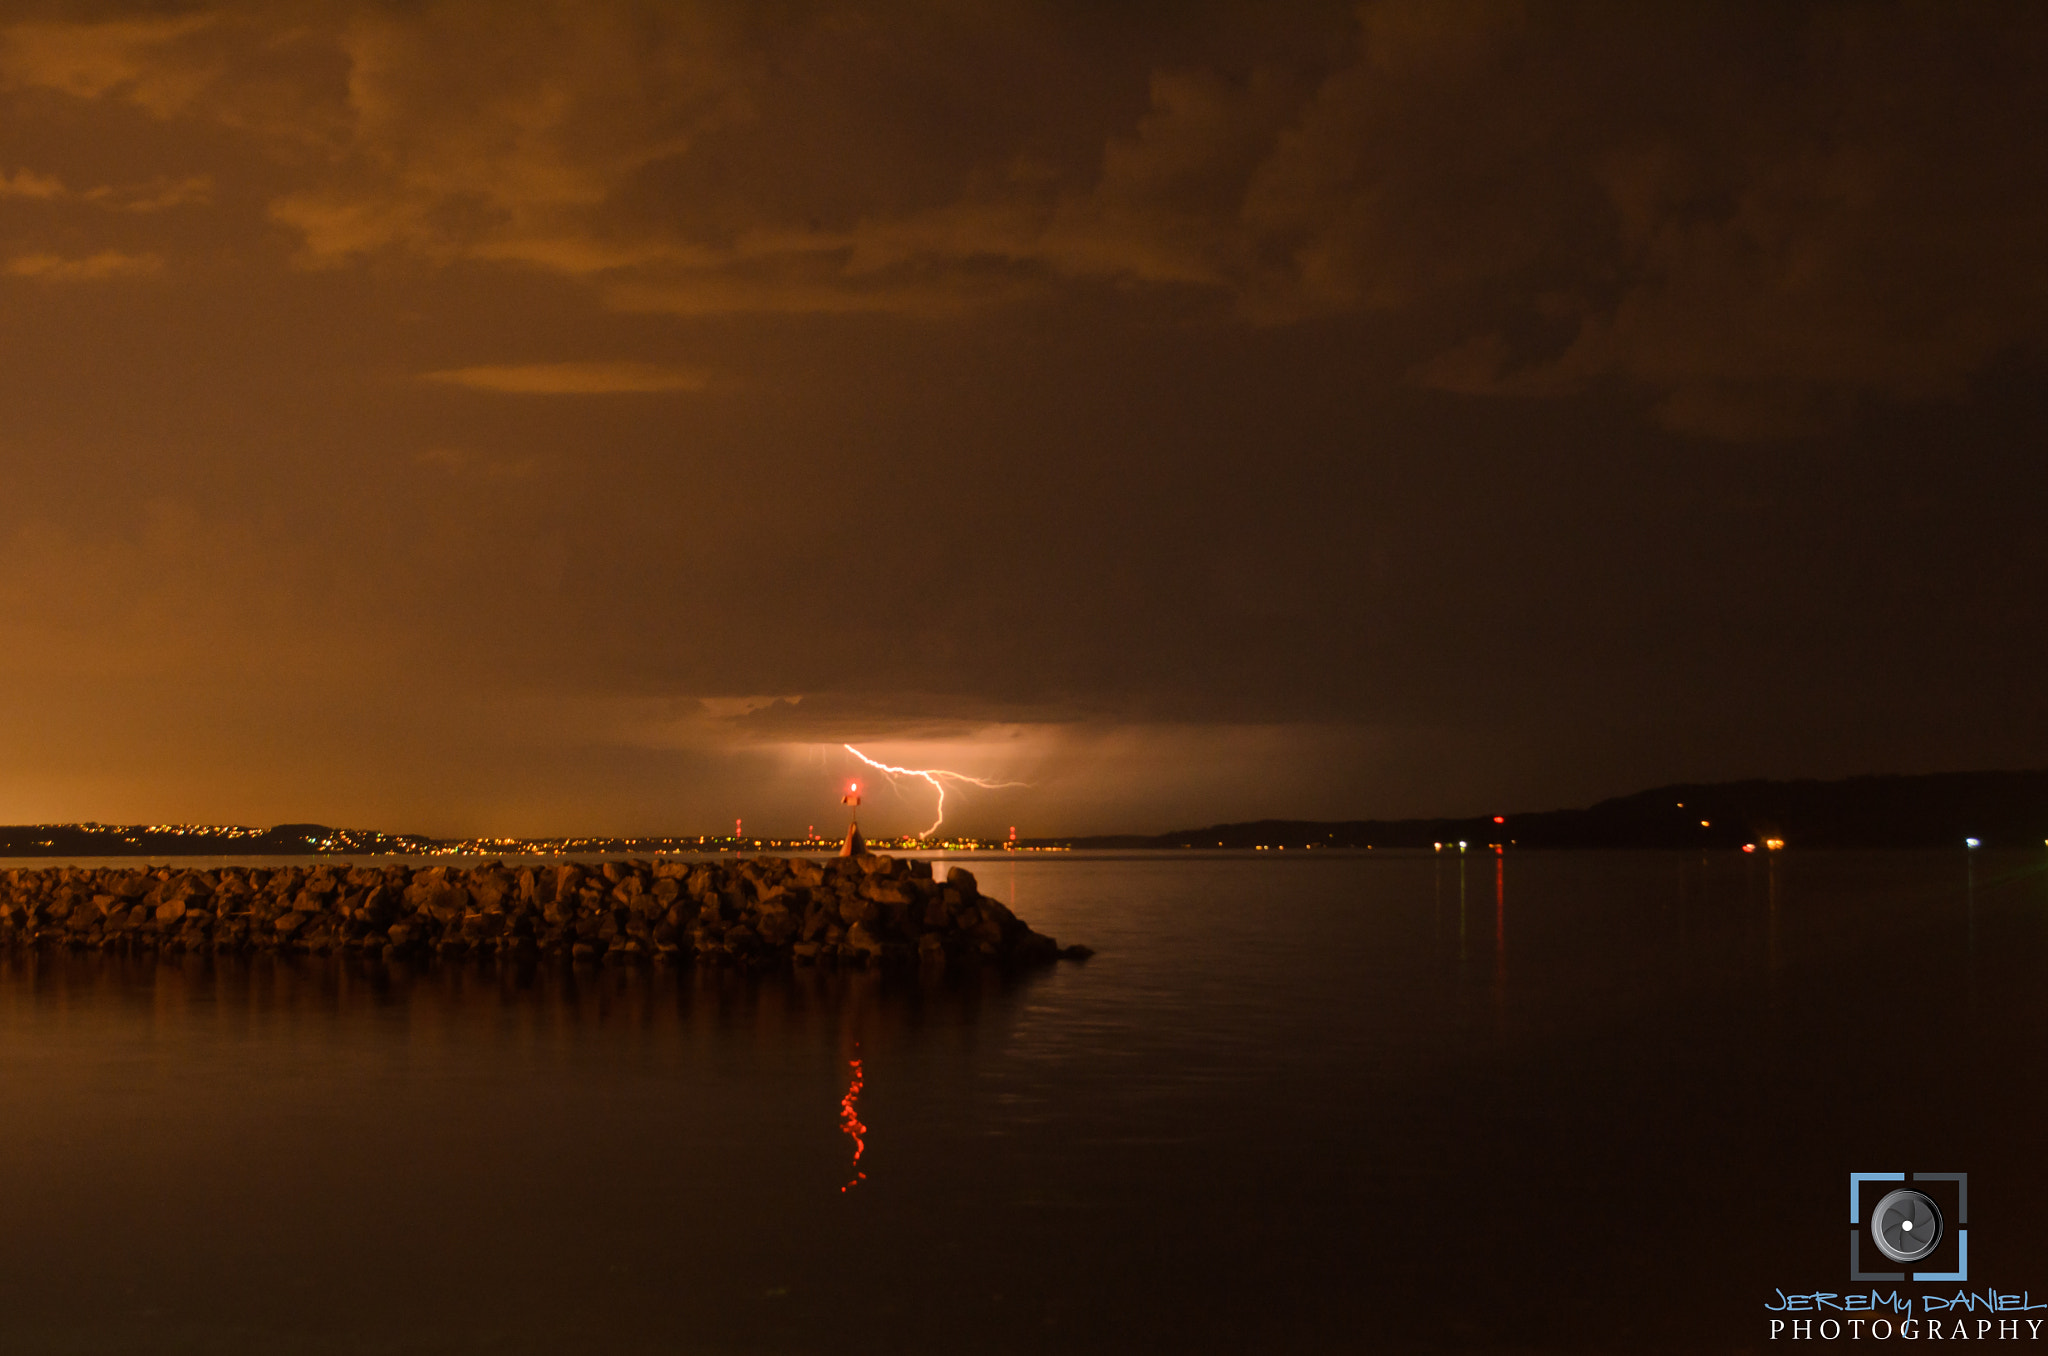 Photograph Lightning Over Gig Harbor Wa - July 13th 2012 by Jeremy Barry on 500px